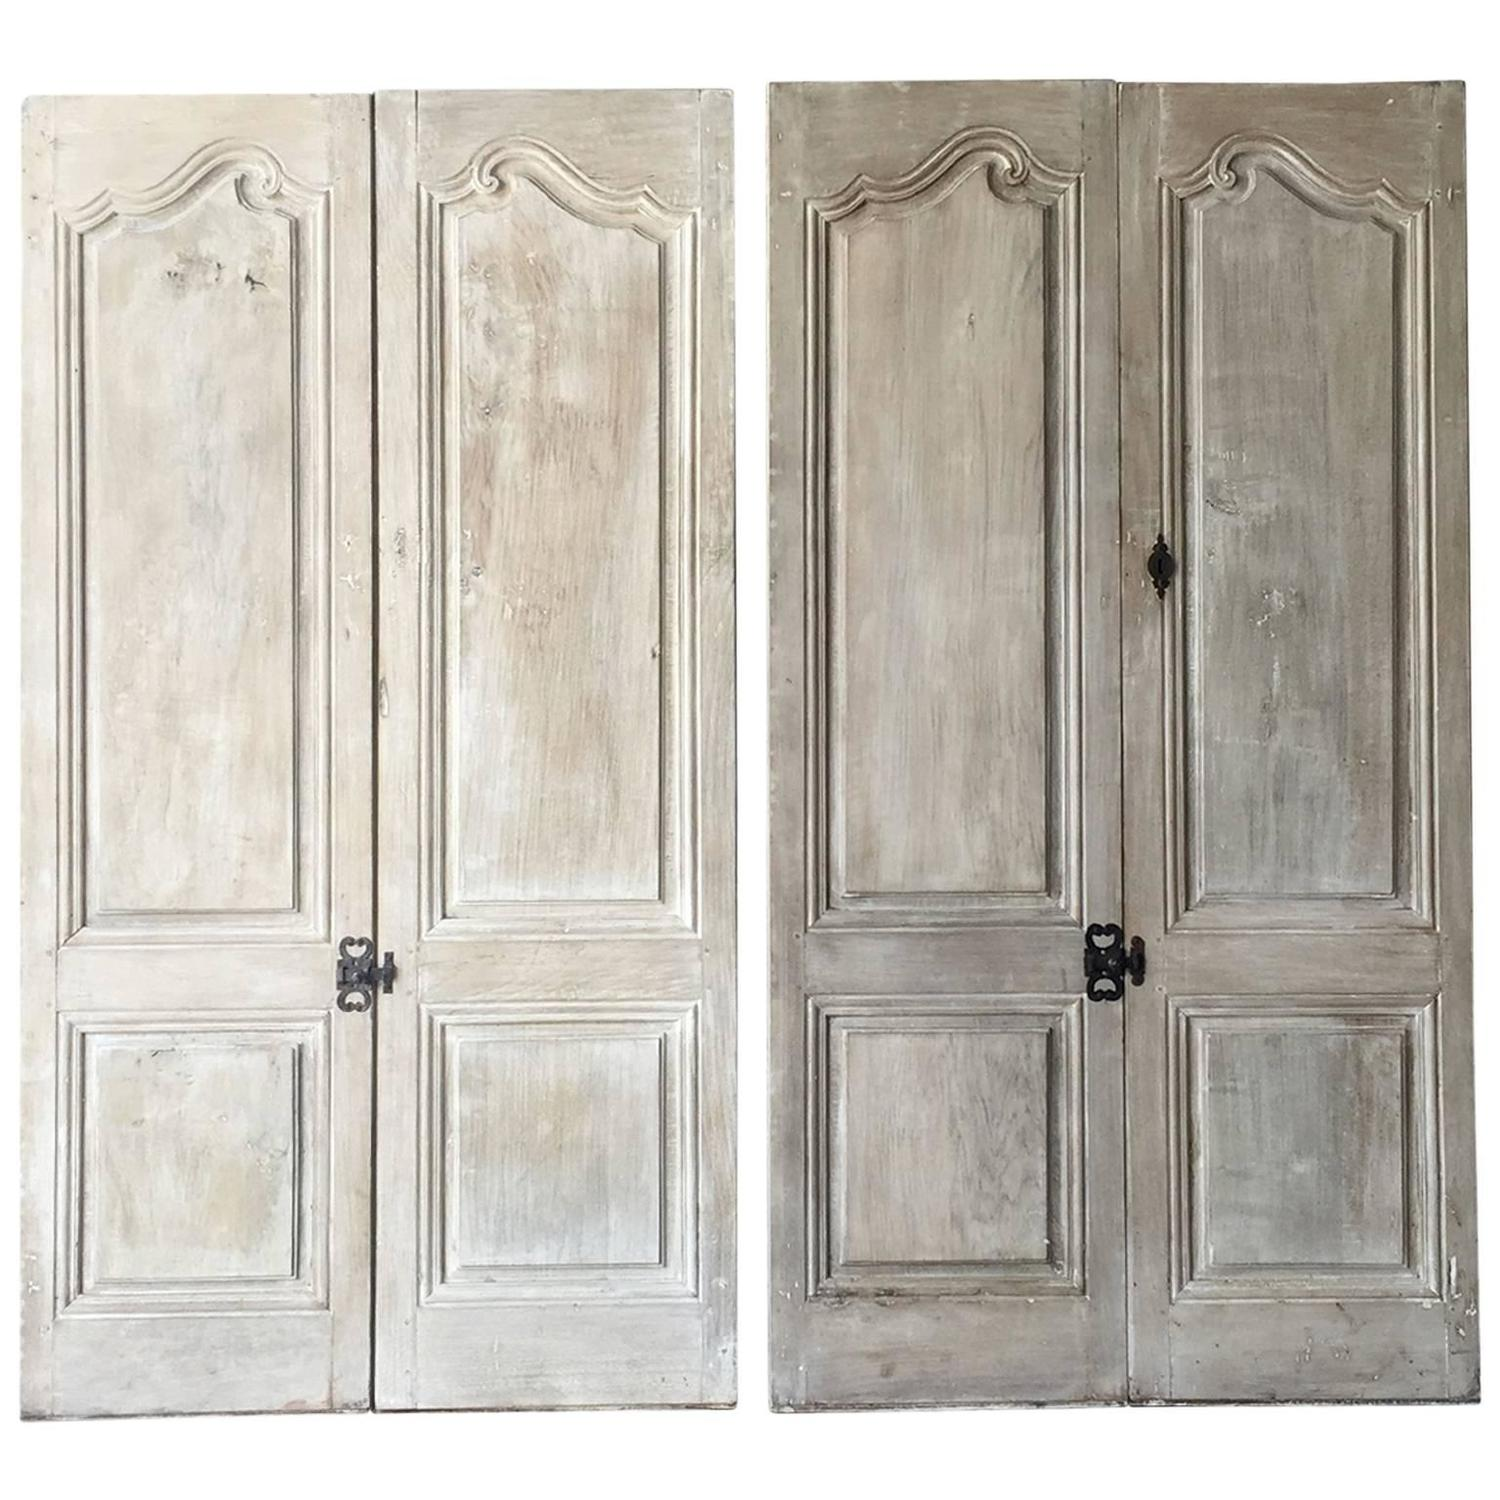 Salvaged Kitchen Cabinets For Sale: Two Pairs Of Matching Antique Cabinet Doors With Reclaimed